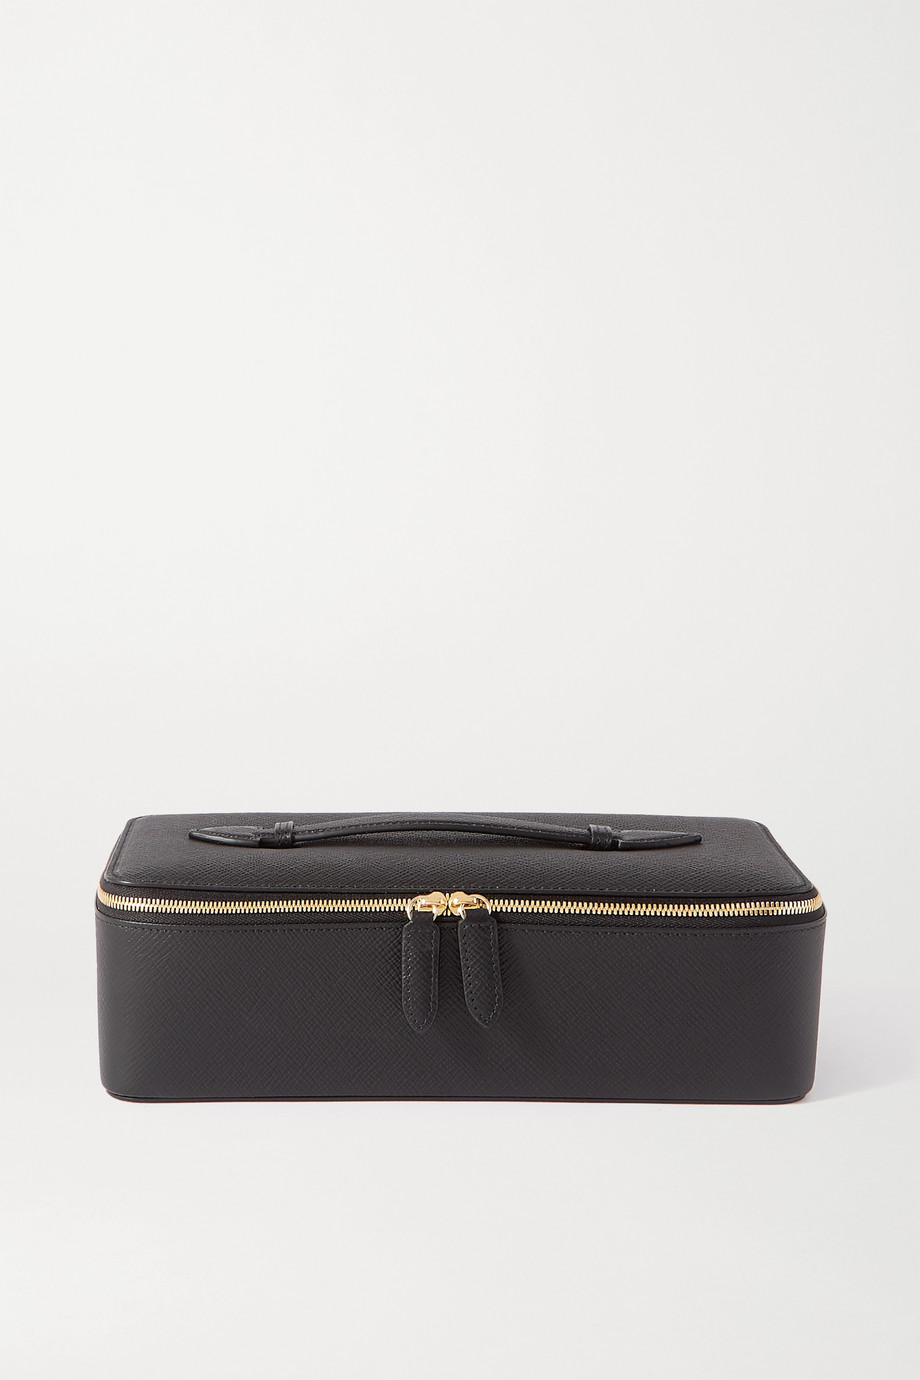 Smythson Panama textured-leather jewelry case